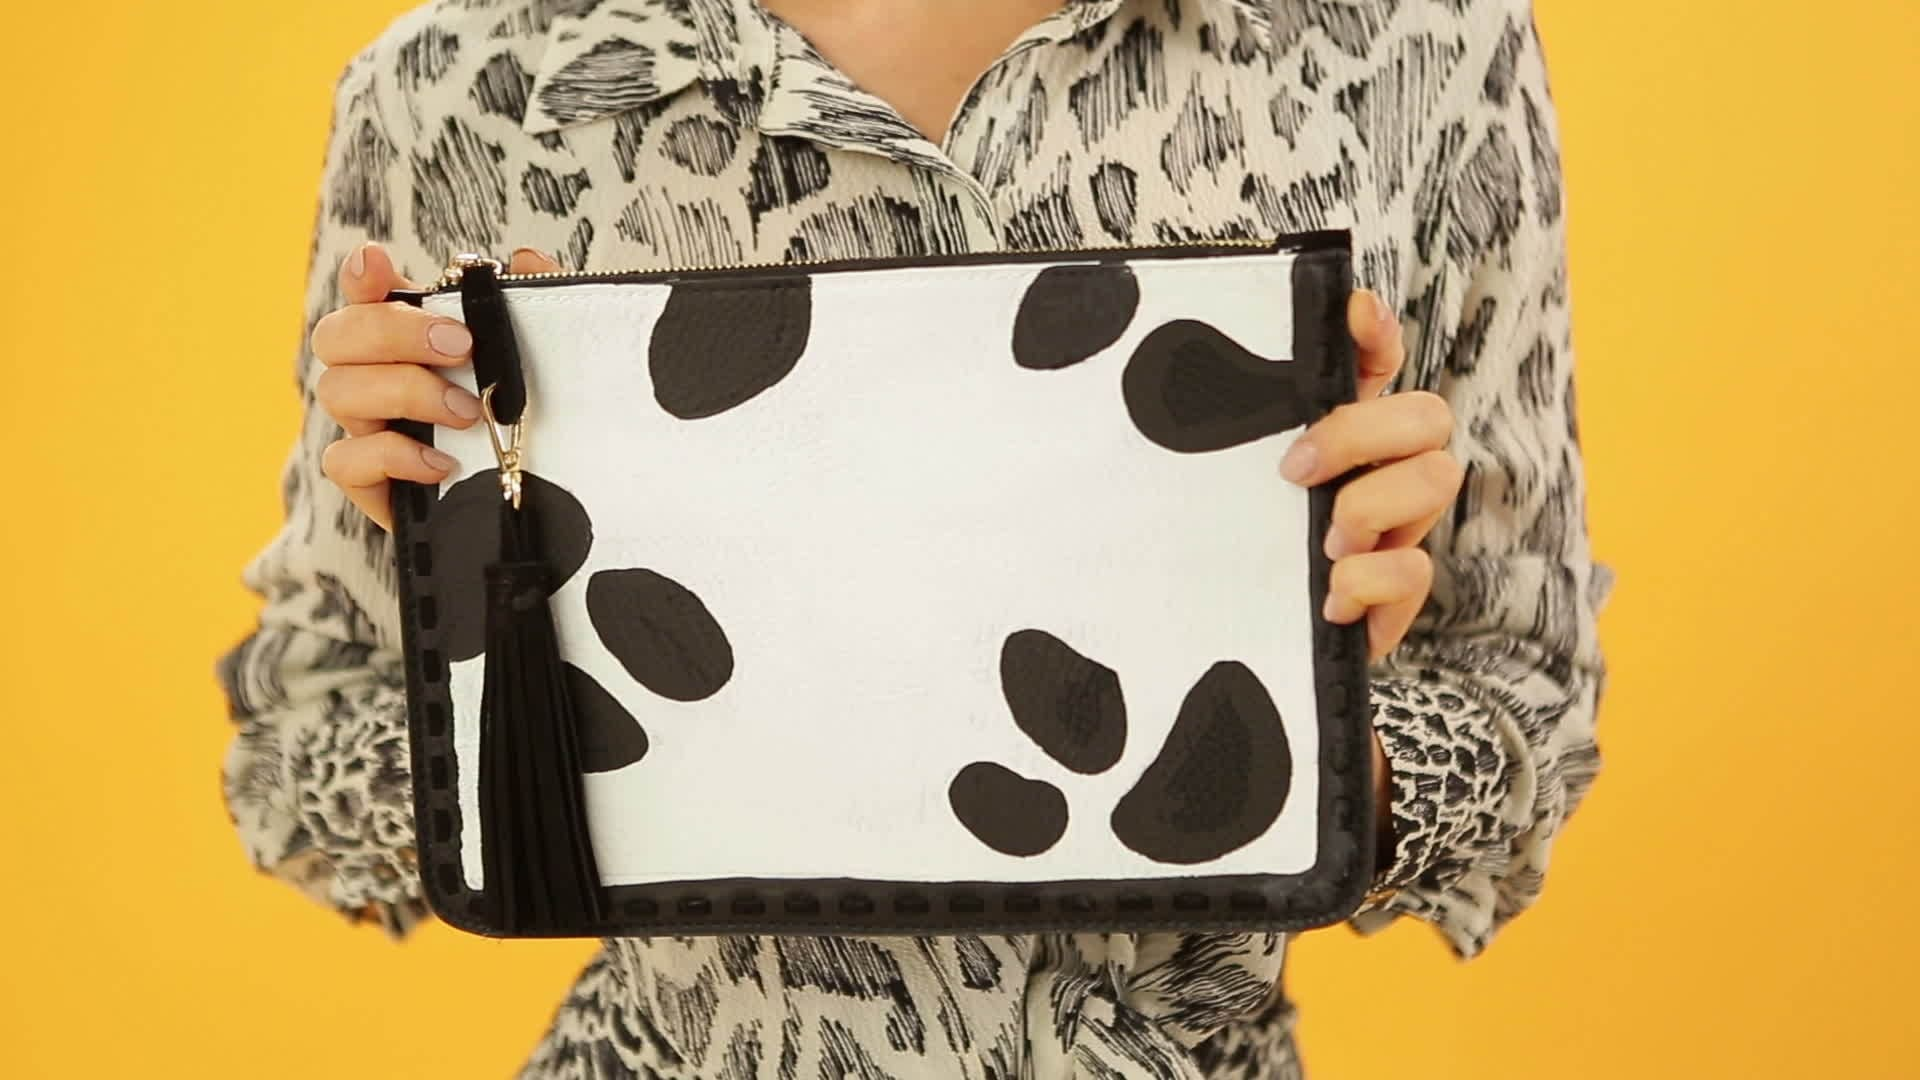 DIY 101 Dalmatians Clutch